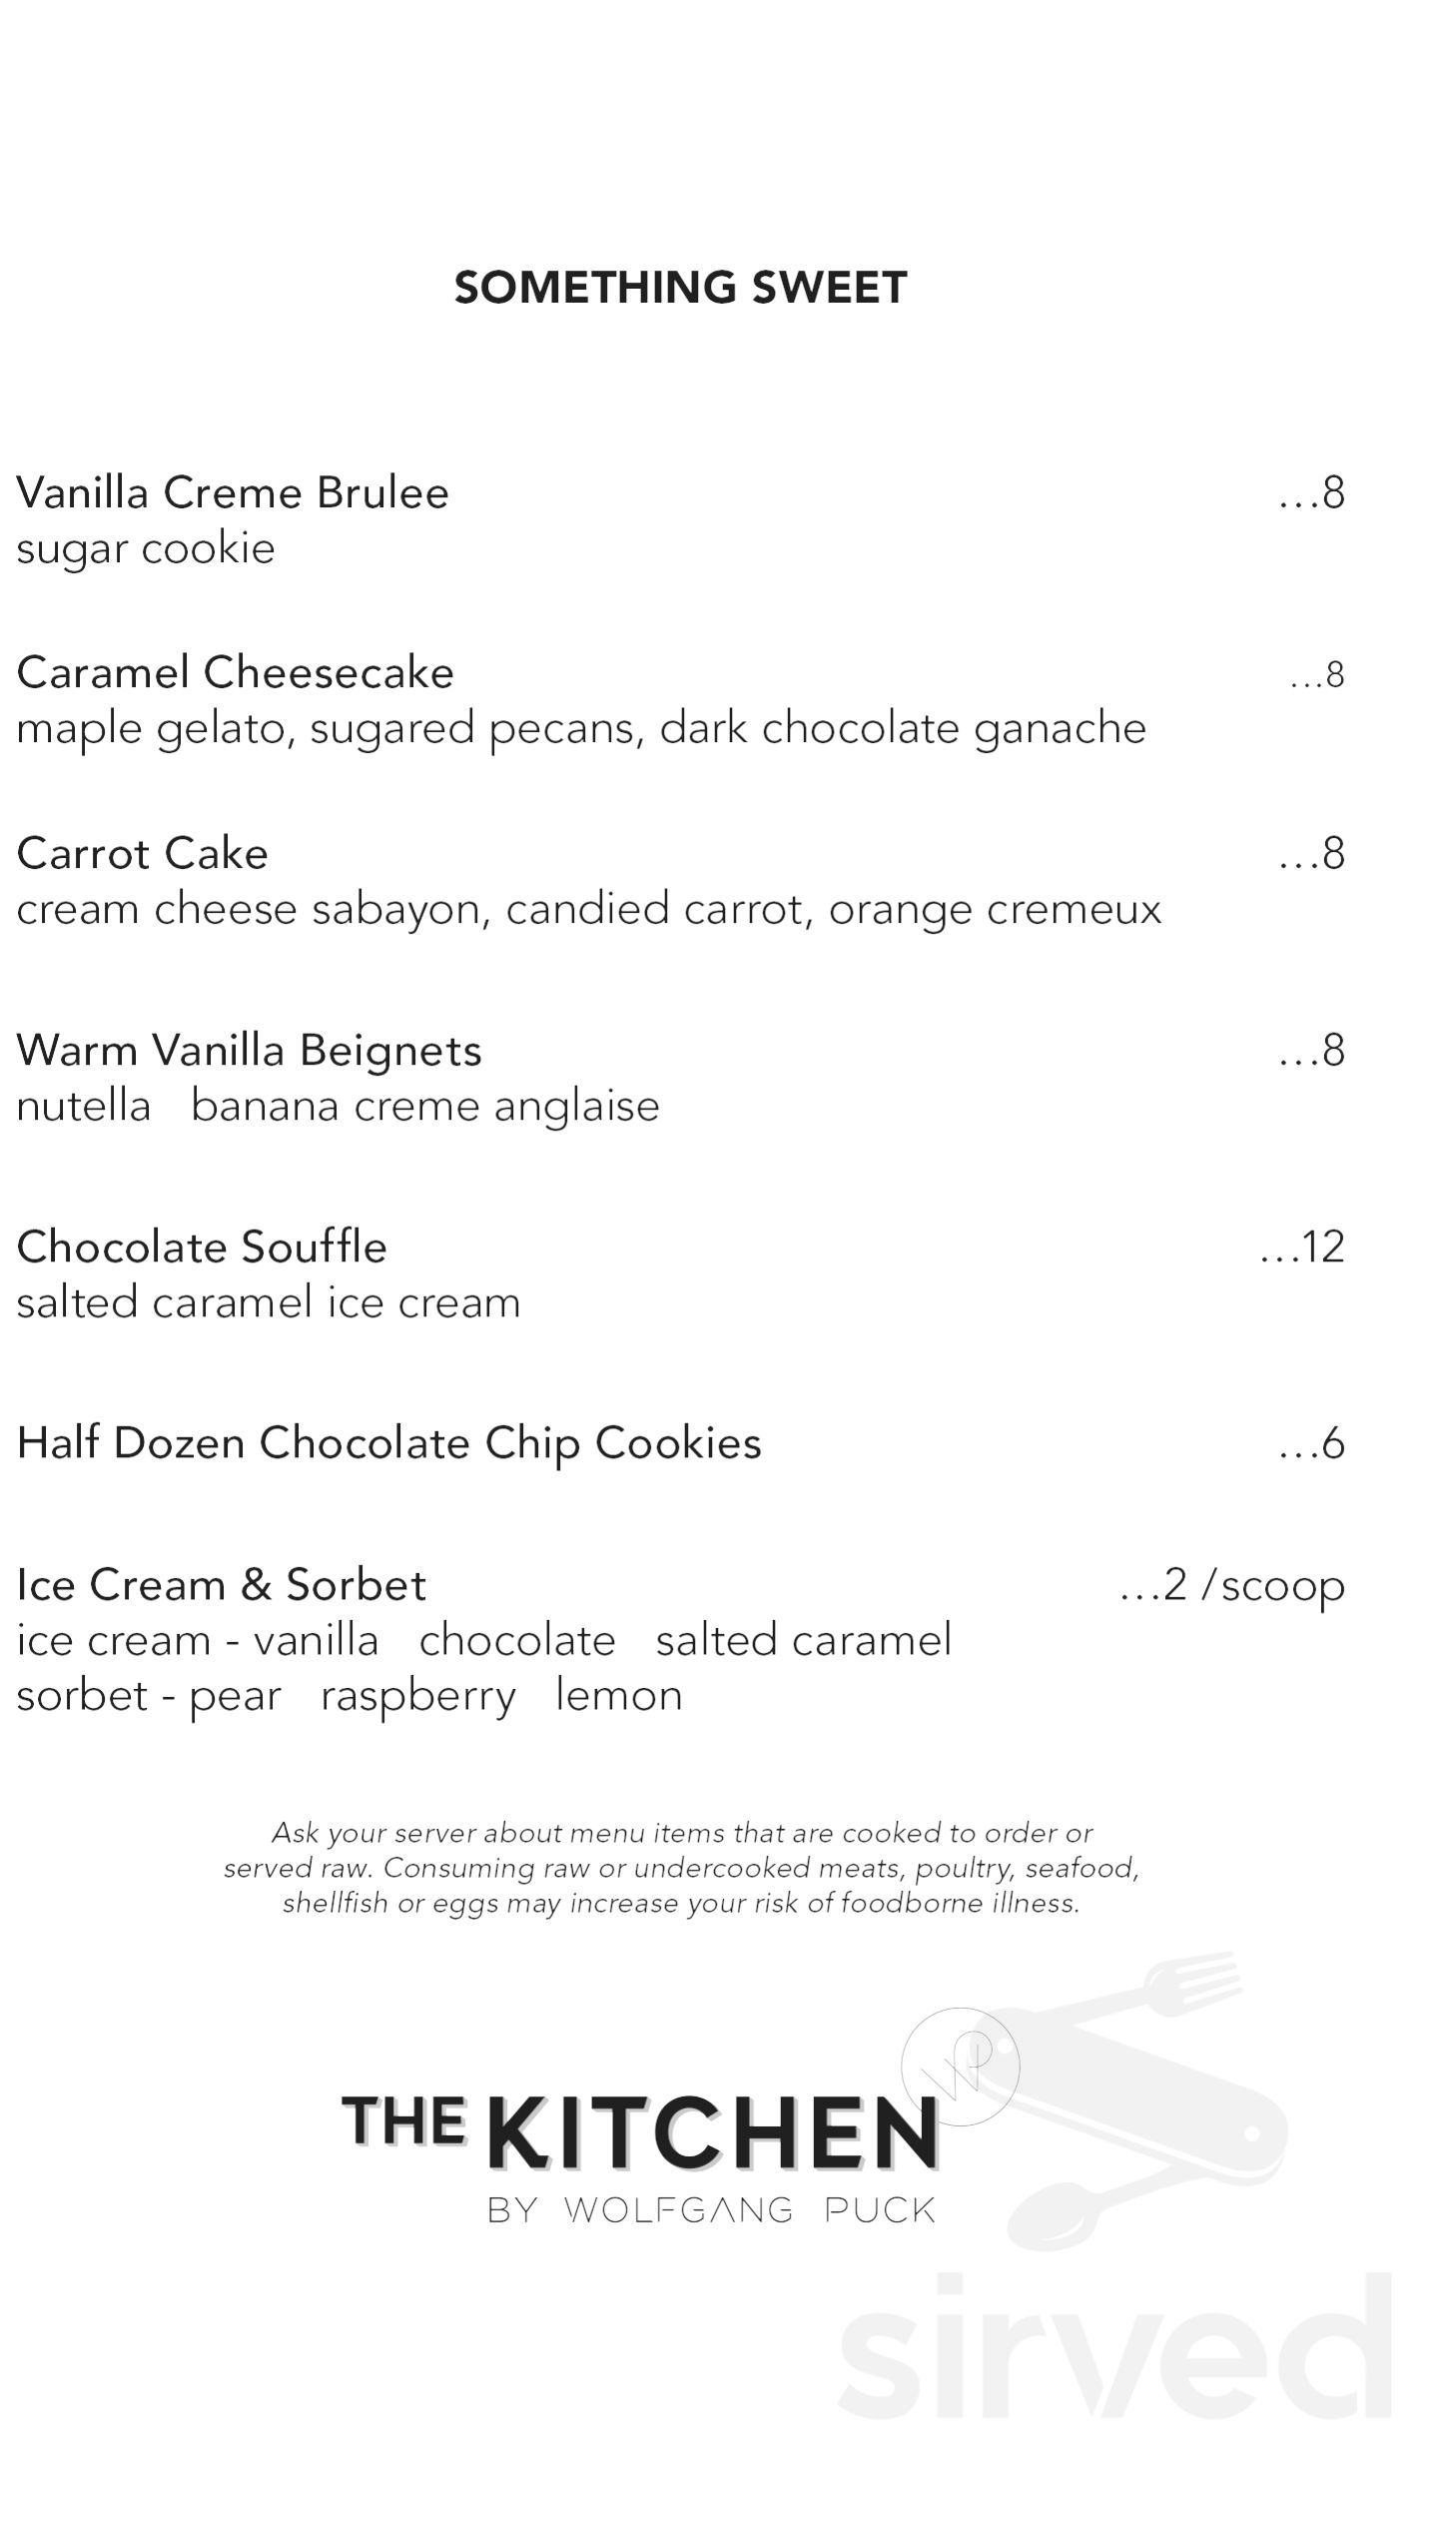 Menu for The Kitchen by Wolfgang Puck in Grand Rapids, Michigan